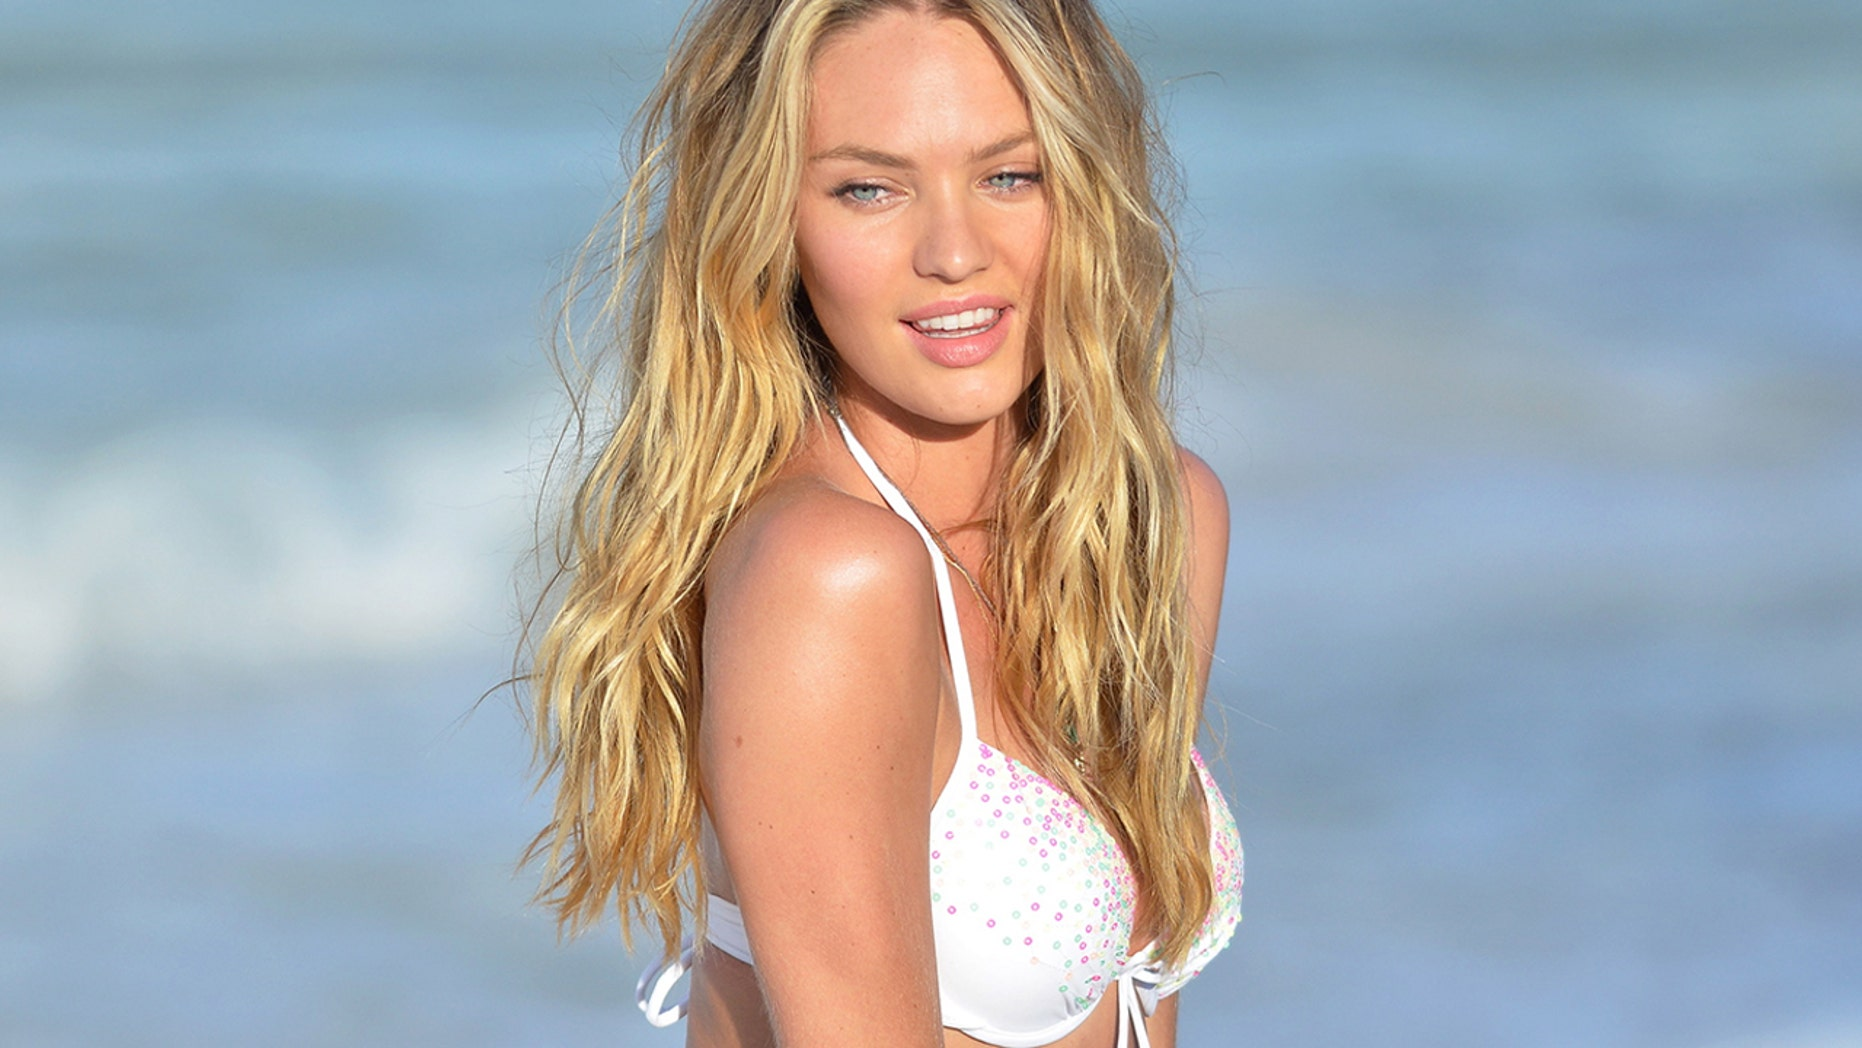 With you Victoria secret candice swanepoel sexy opinion useful